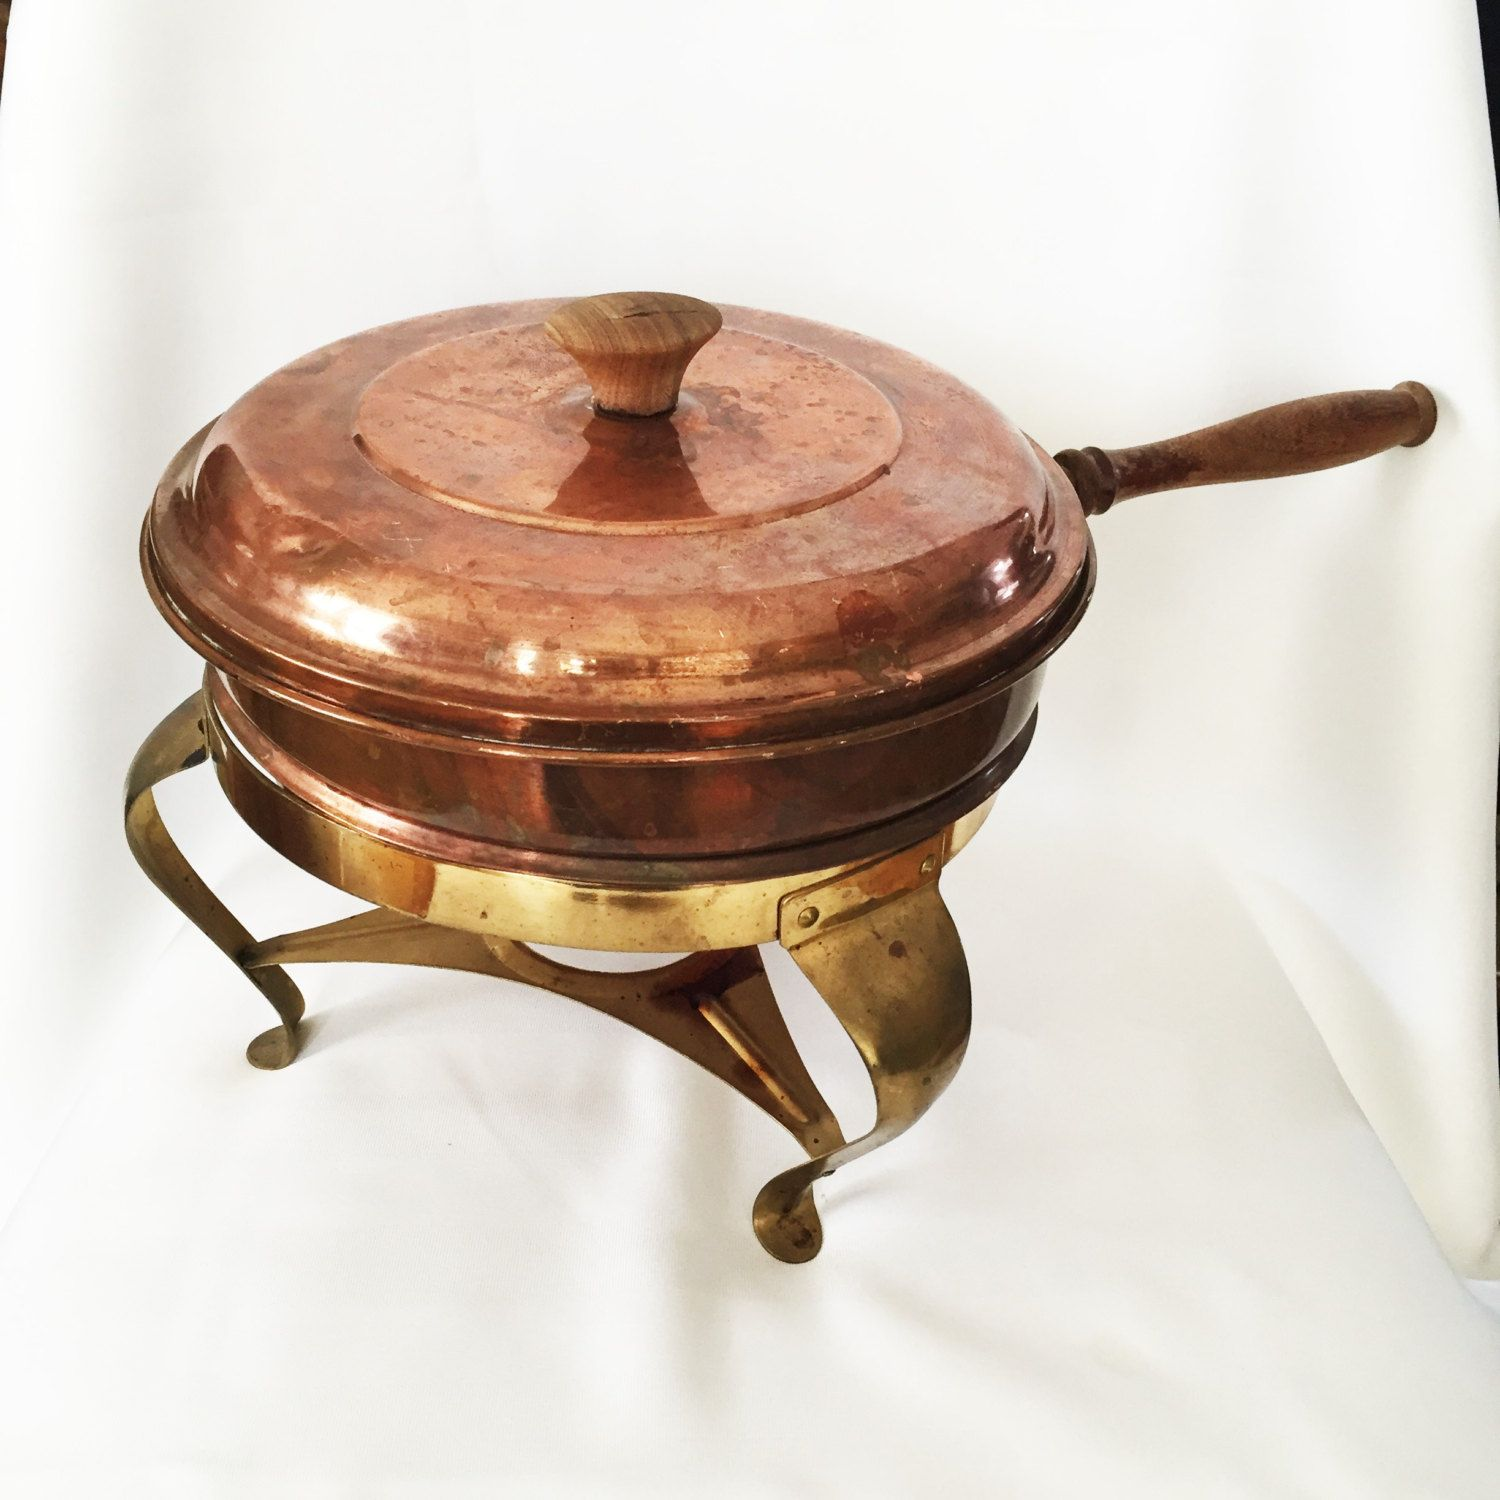 Cast iron kitchen trivet tea pot stand metal hot dish tray cookware - Copper Pot Stand And Warmer Large Copper And Brass Set Pot Bowl Lid And Warming Stand